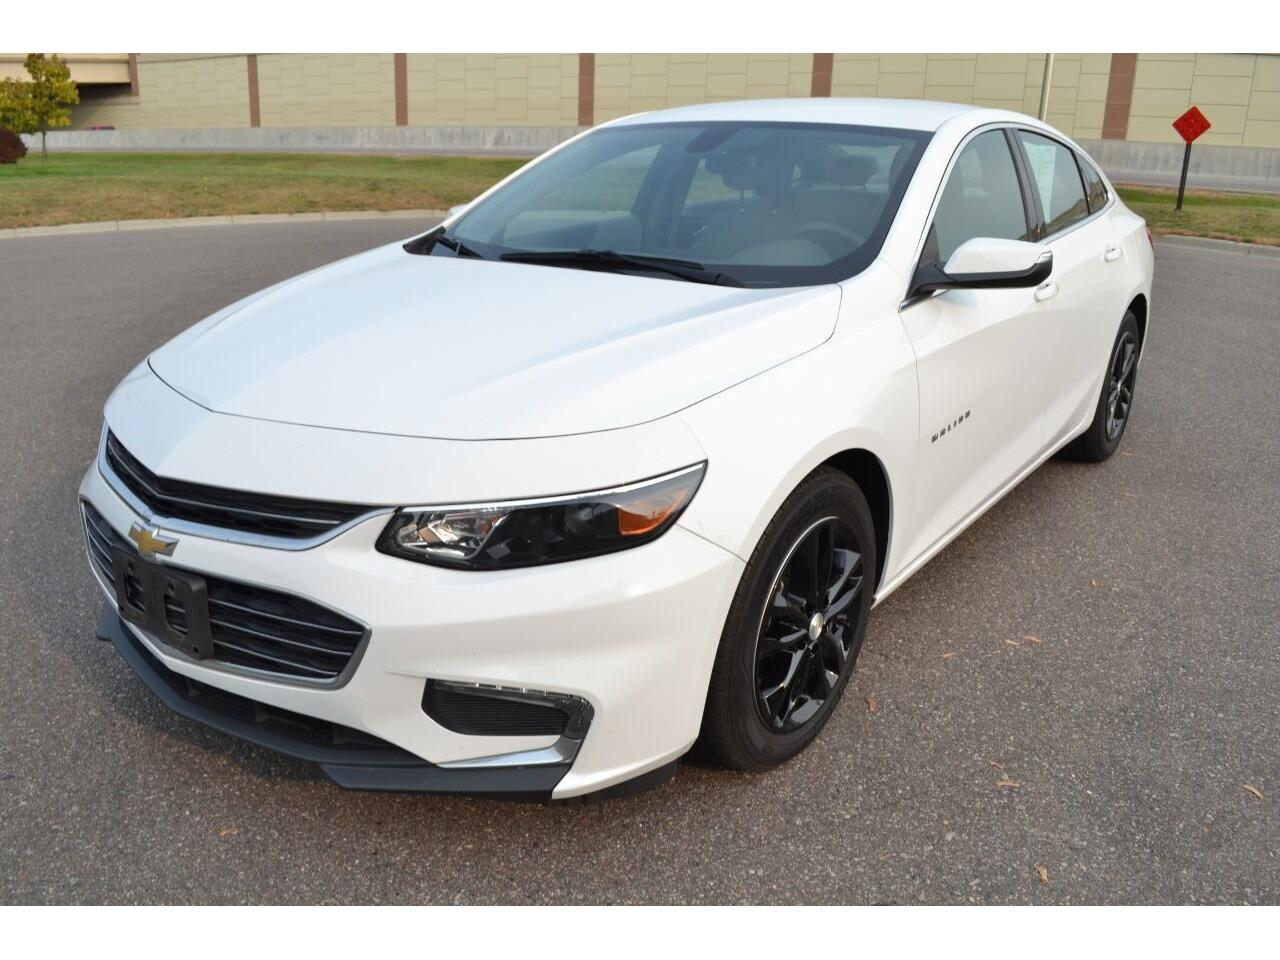 2017 Chevrolet Malibu (CC-1411151) for sale in Ramsey, Minnesota